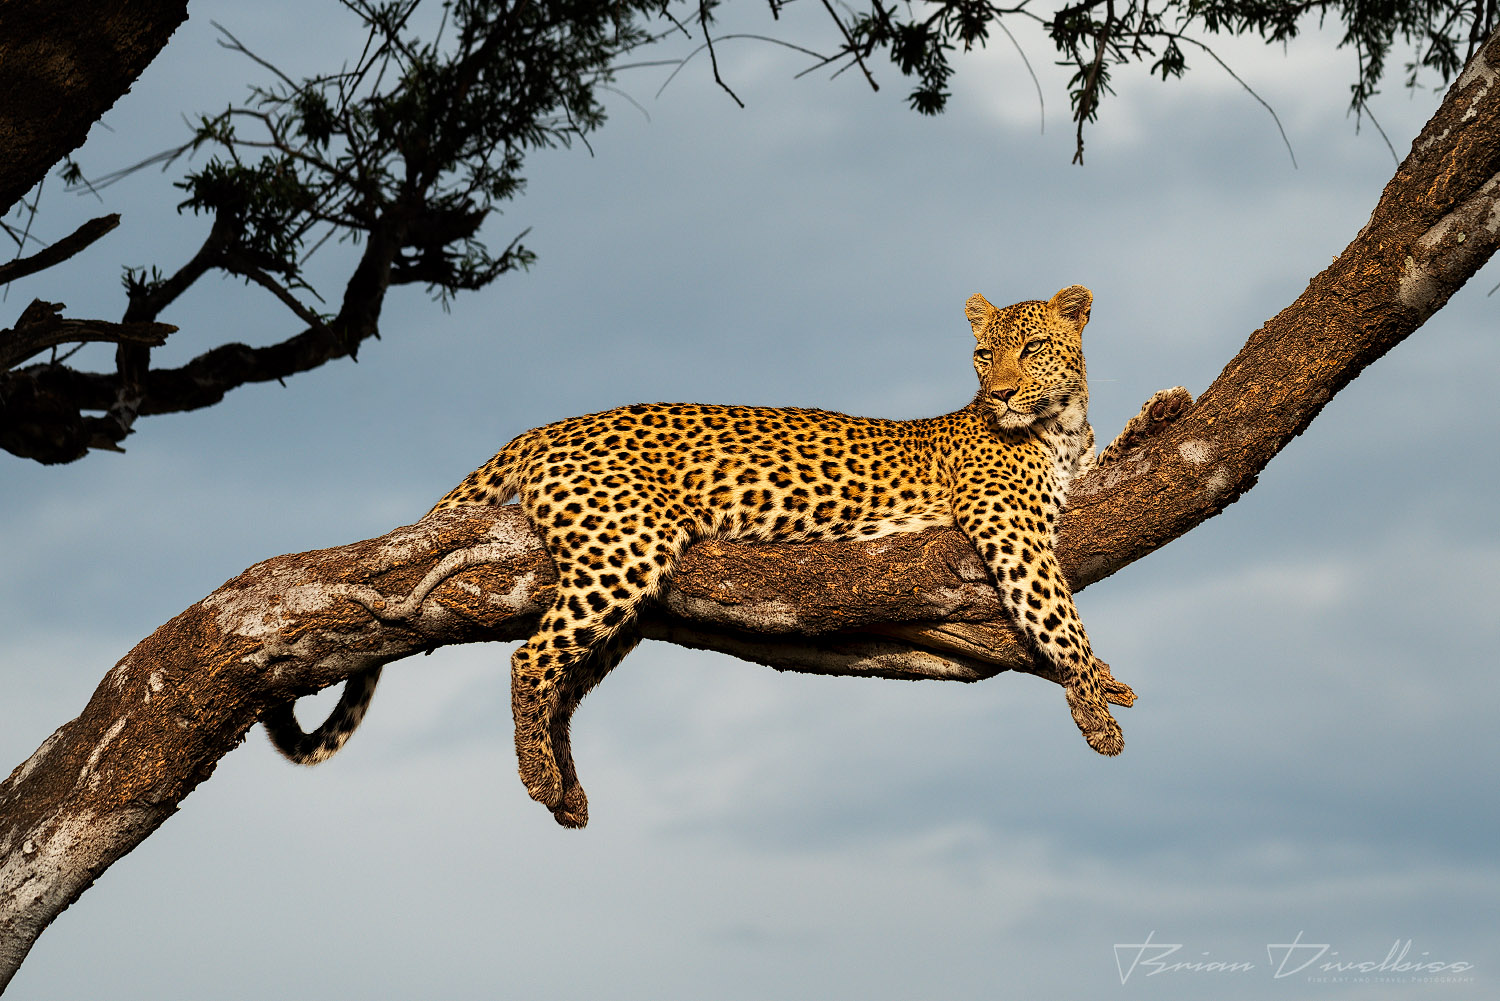 A female leopard rests in a tree far above the ground as the morning rays bathe her colorful coat.